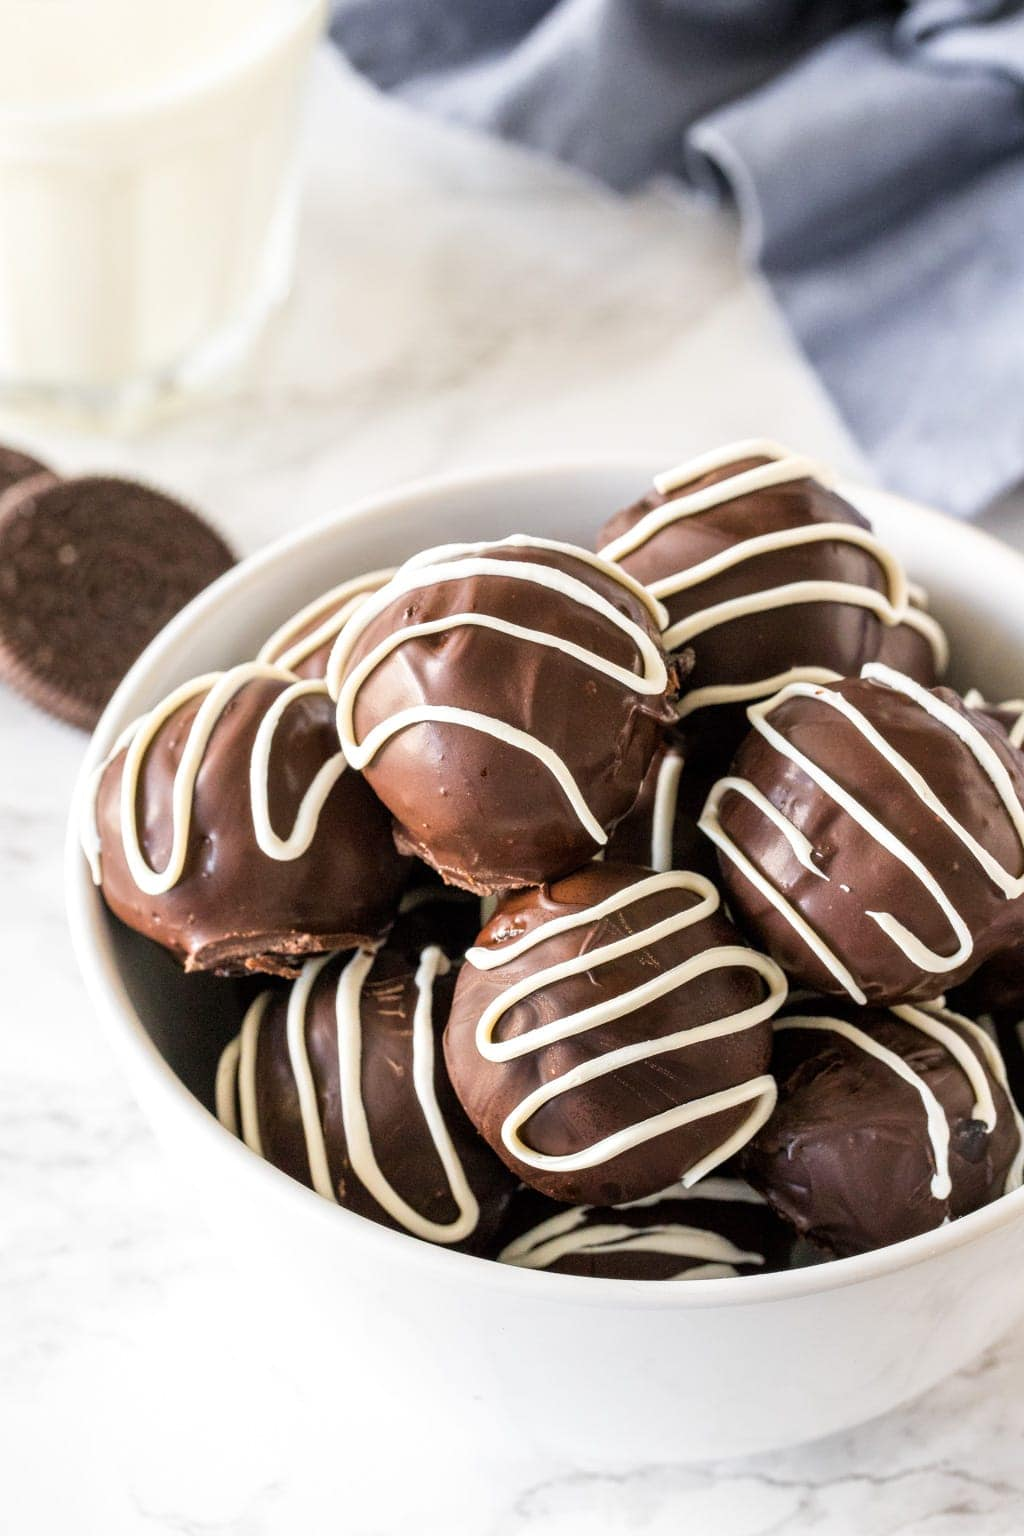 A bowl of Oreo truffles coated in chocolate.